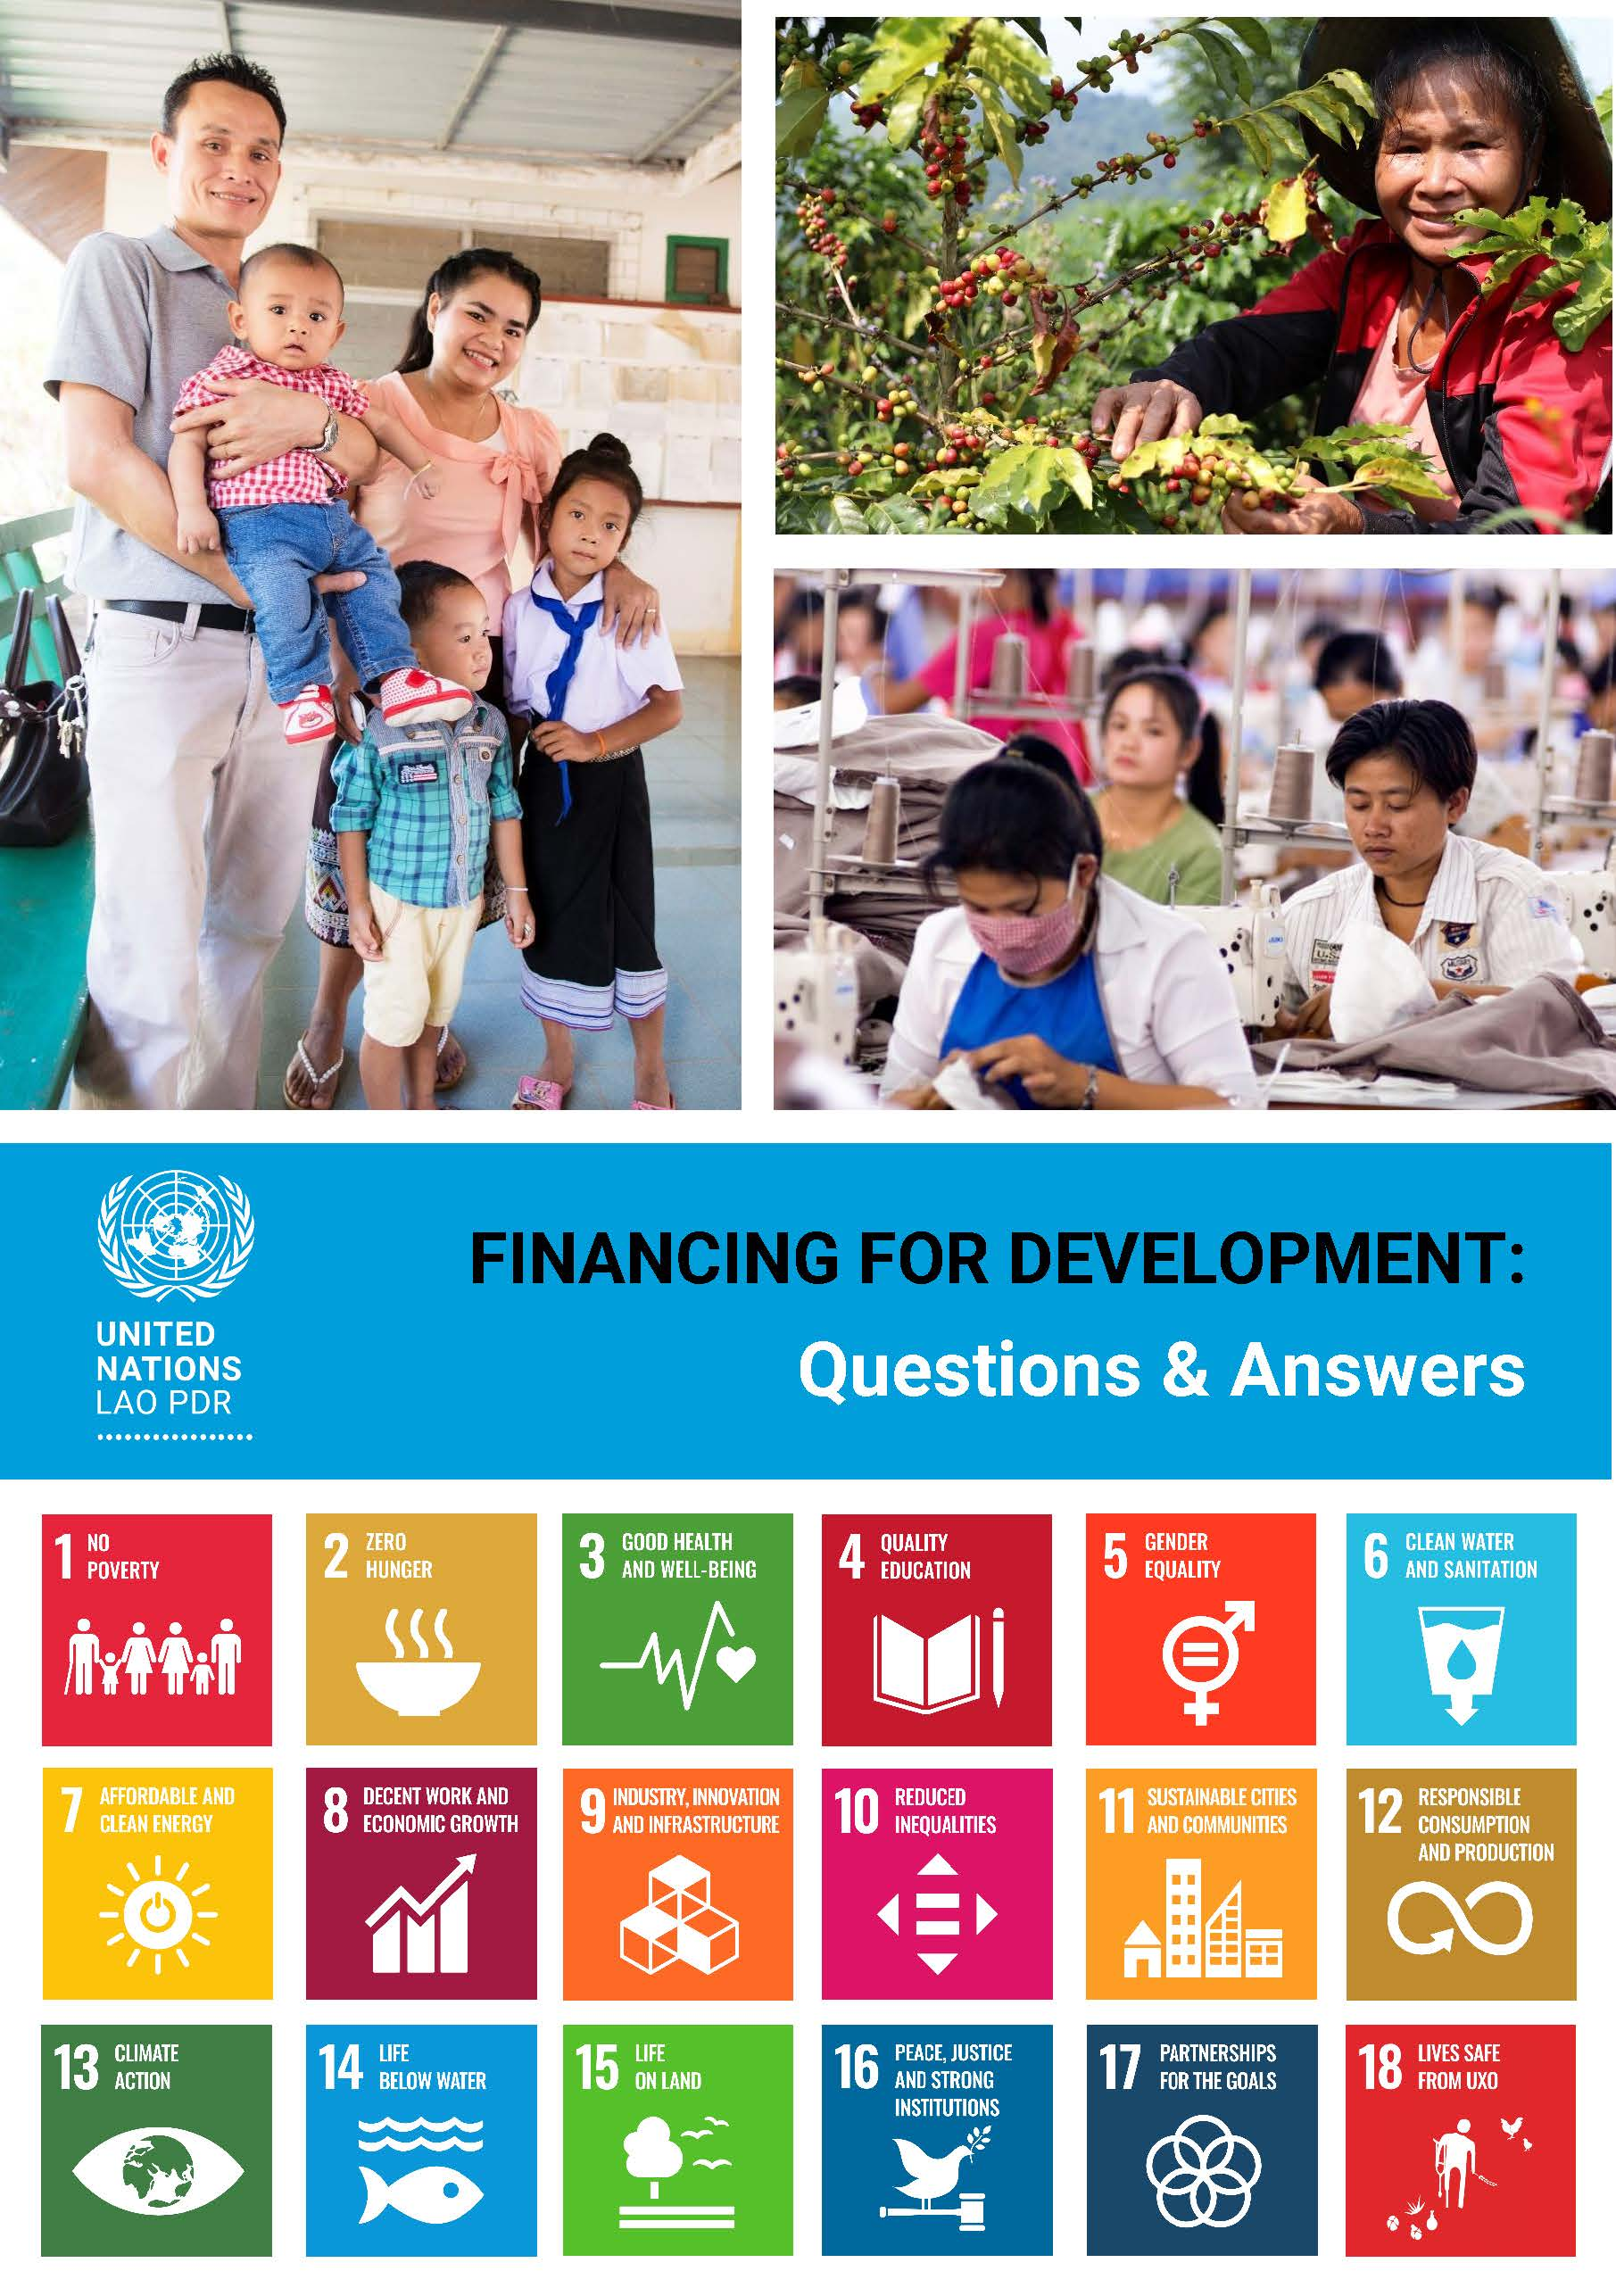 Financing for Development: Questions & Answers